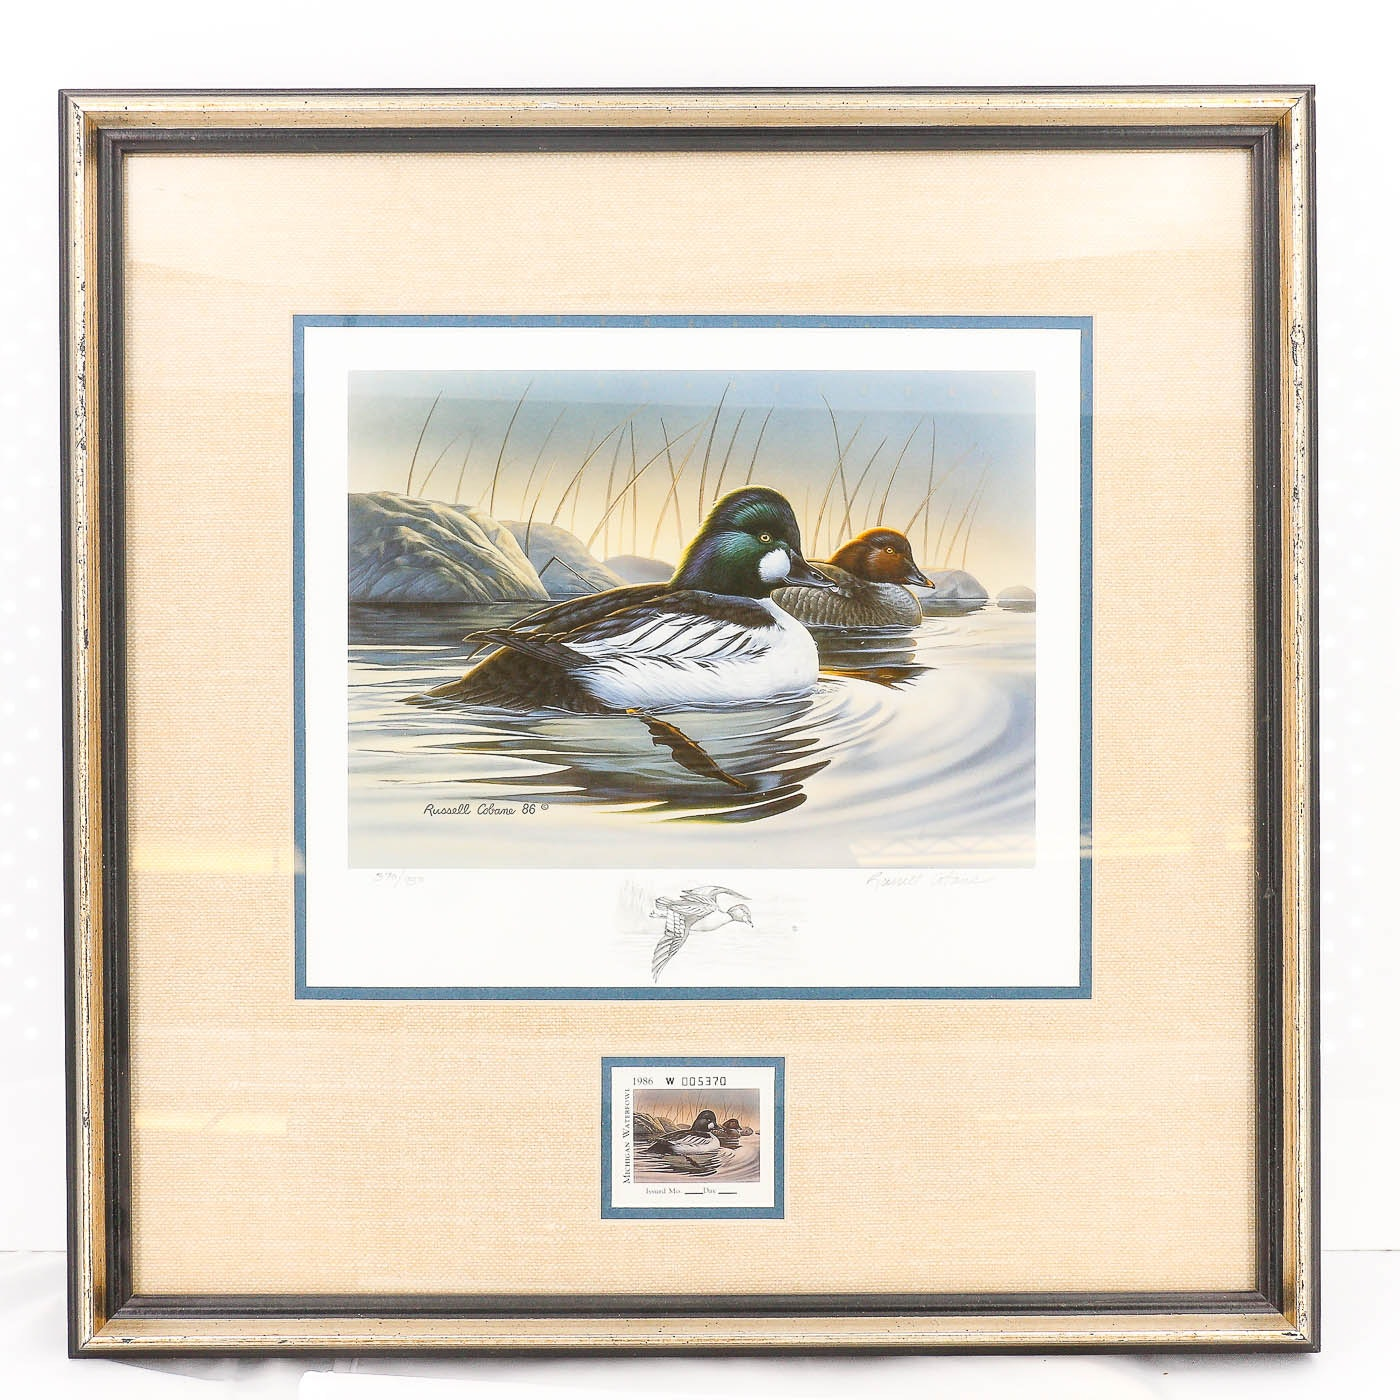 Russell Cobane Michigan Duck Stamp Offset Lithograph and Stamp